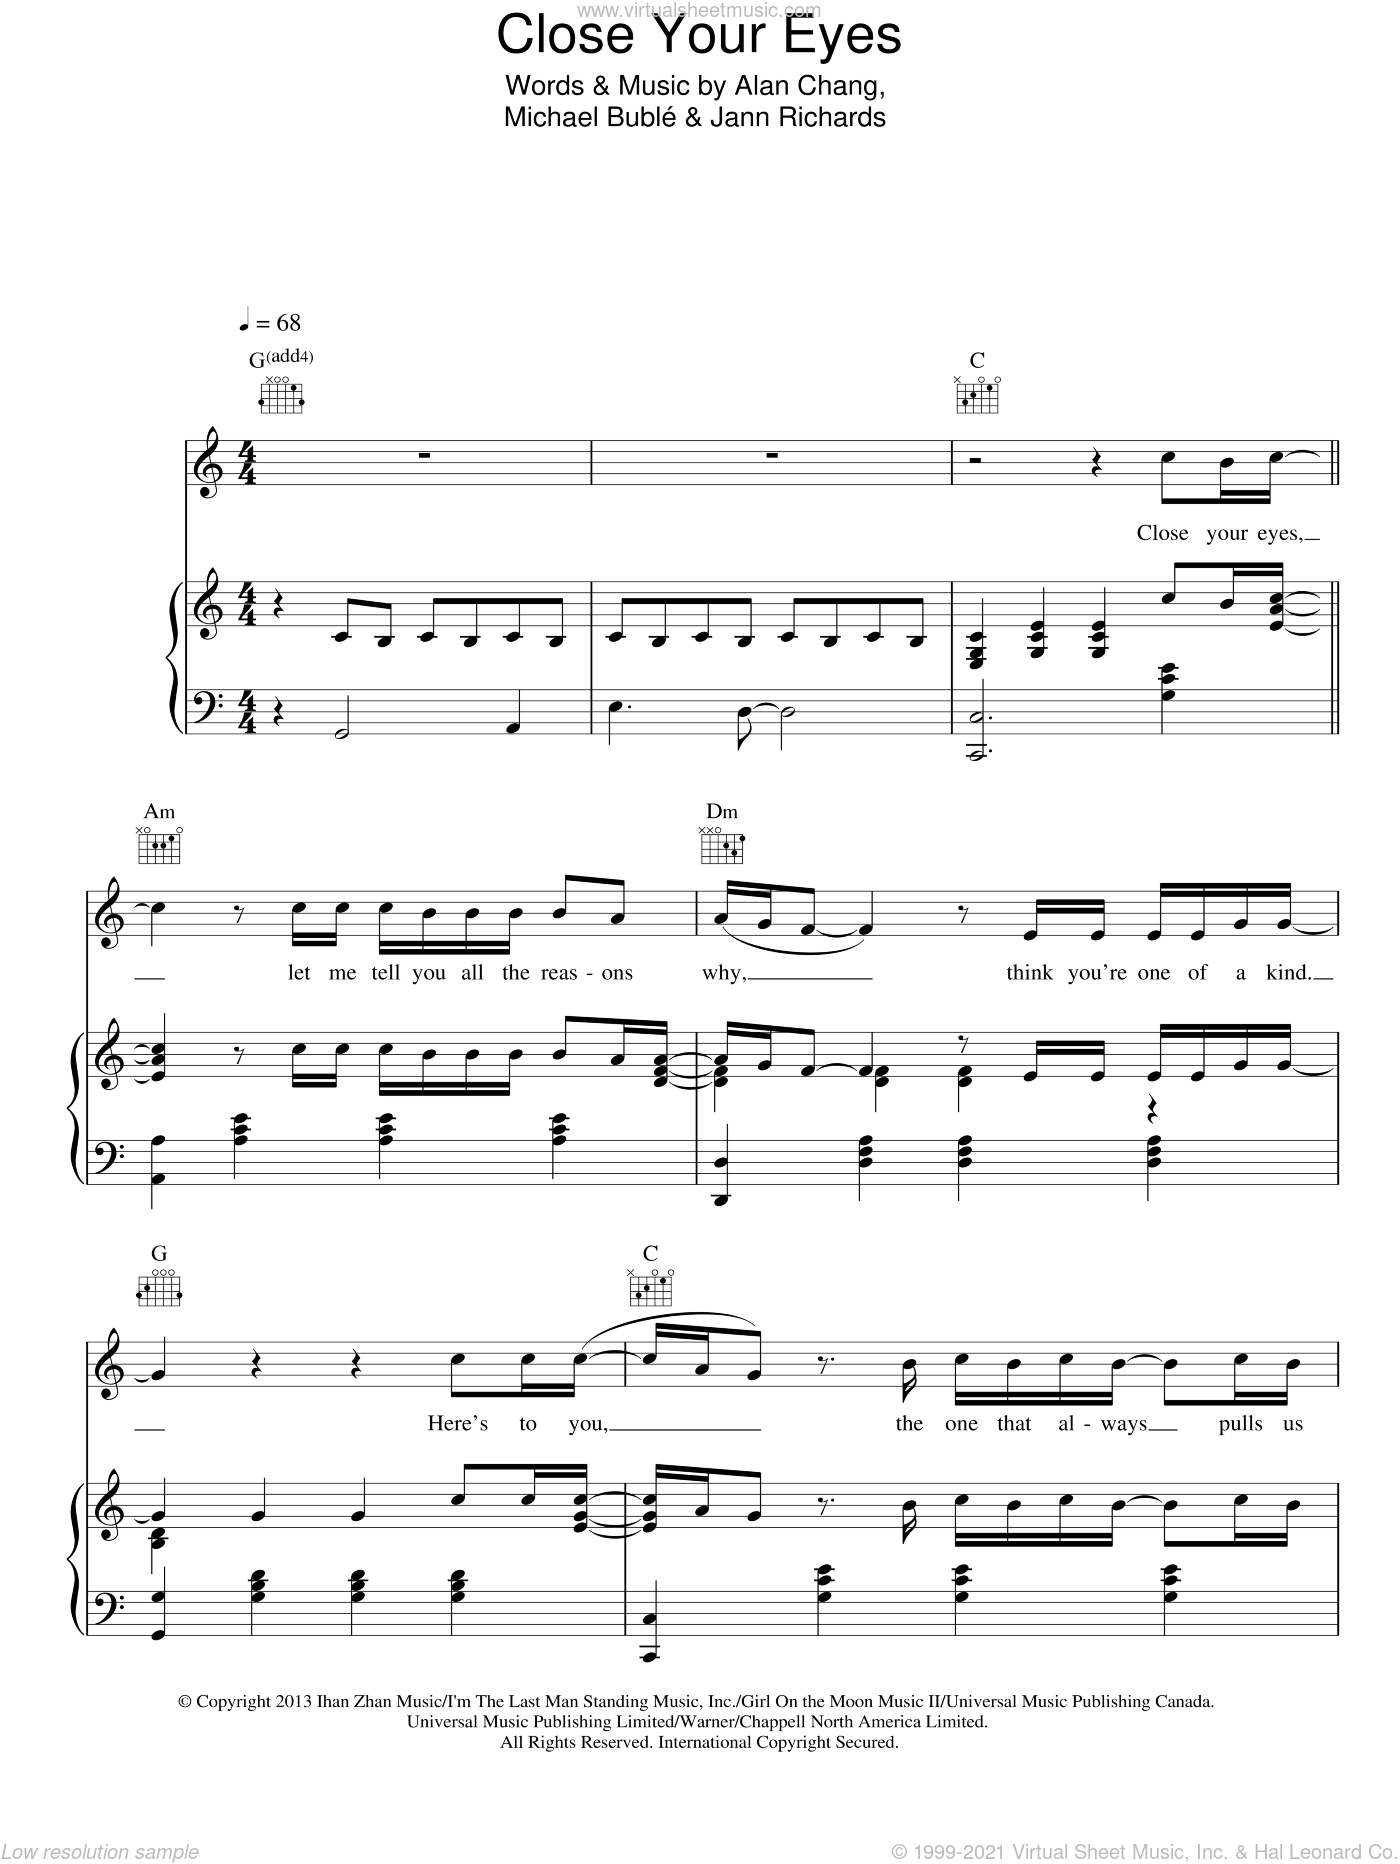 Close Your Eyes sheet music for voice, piano or guitar by Michael Buble, Alan Chang and Jann Richards, intermediate skill level